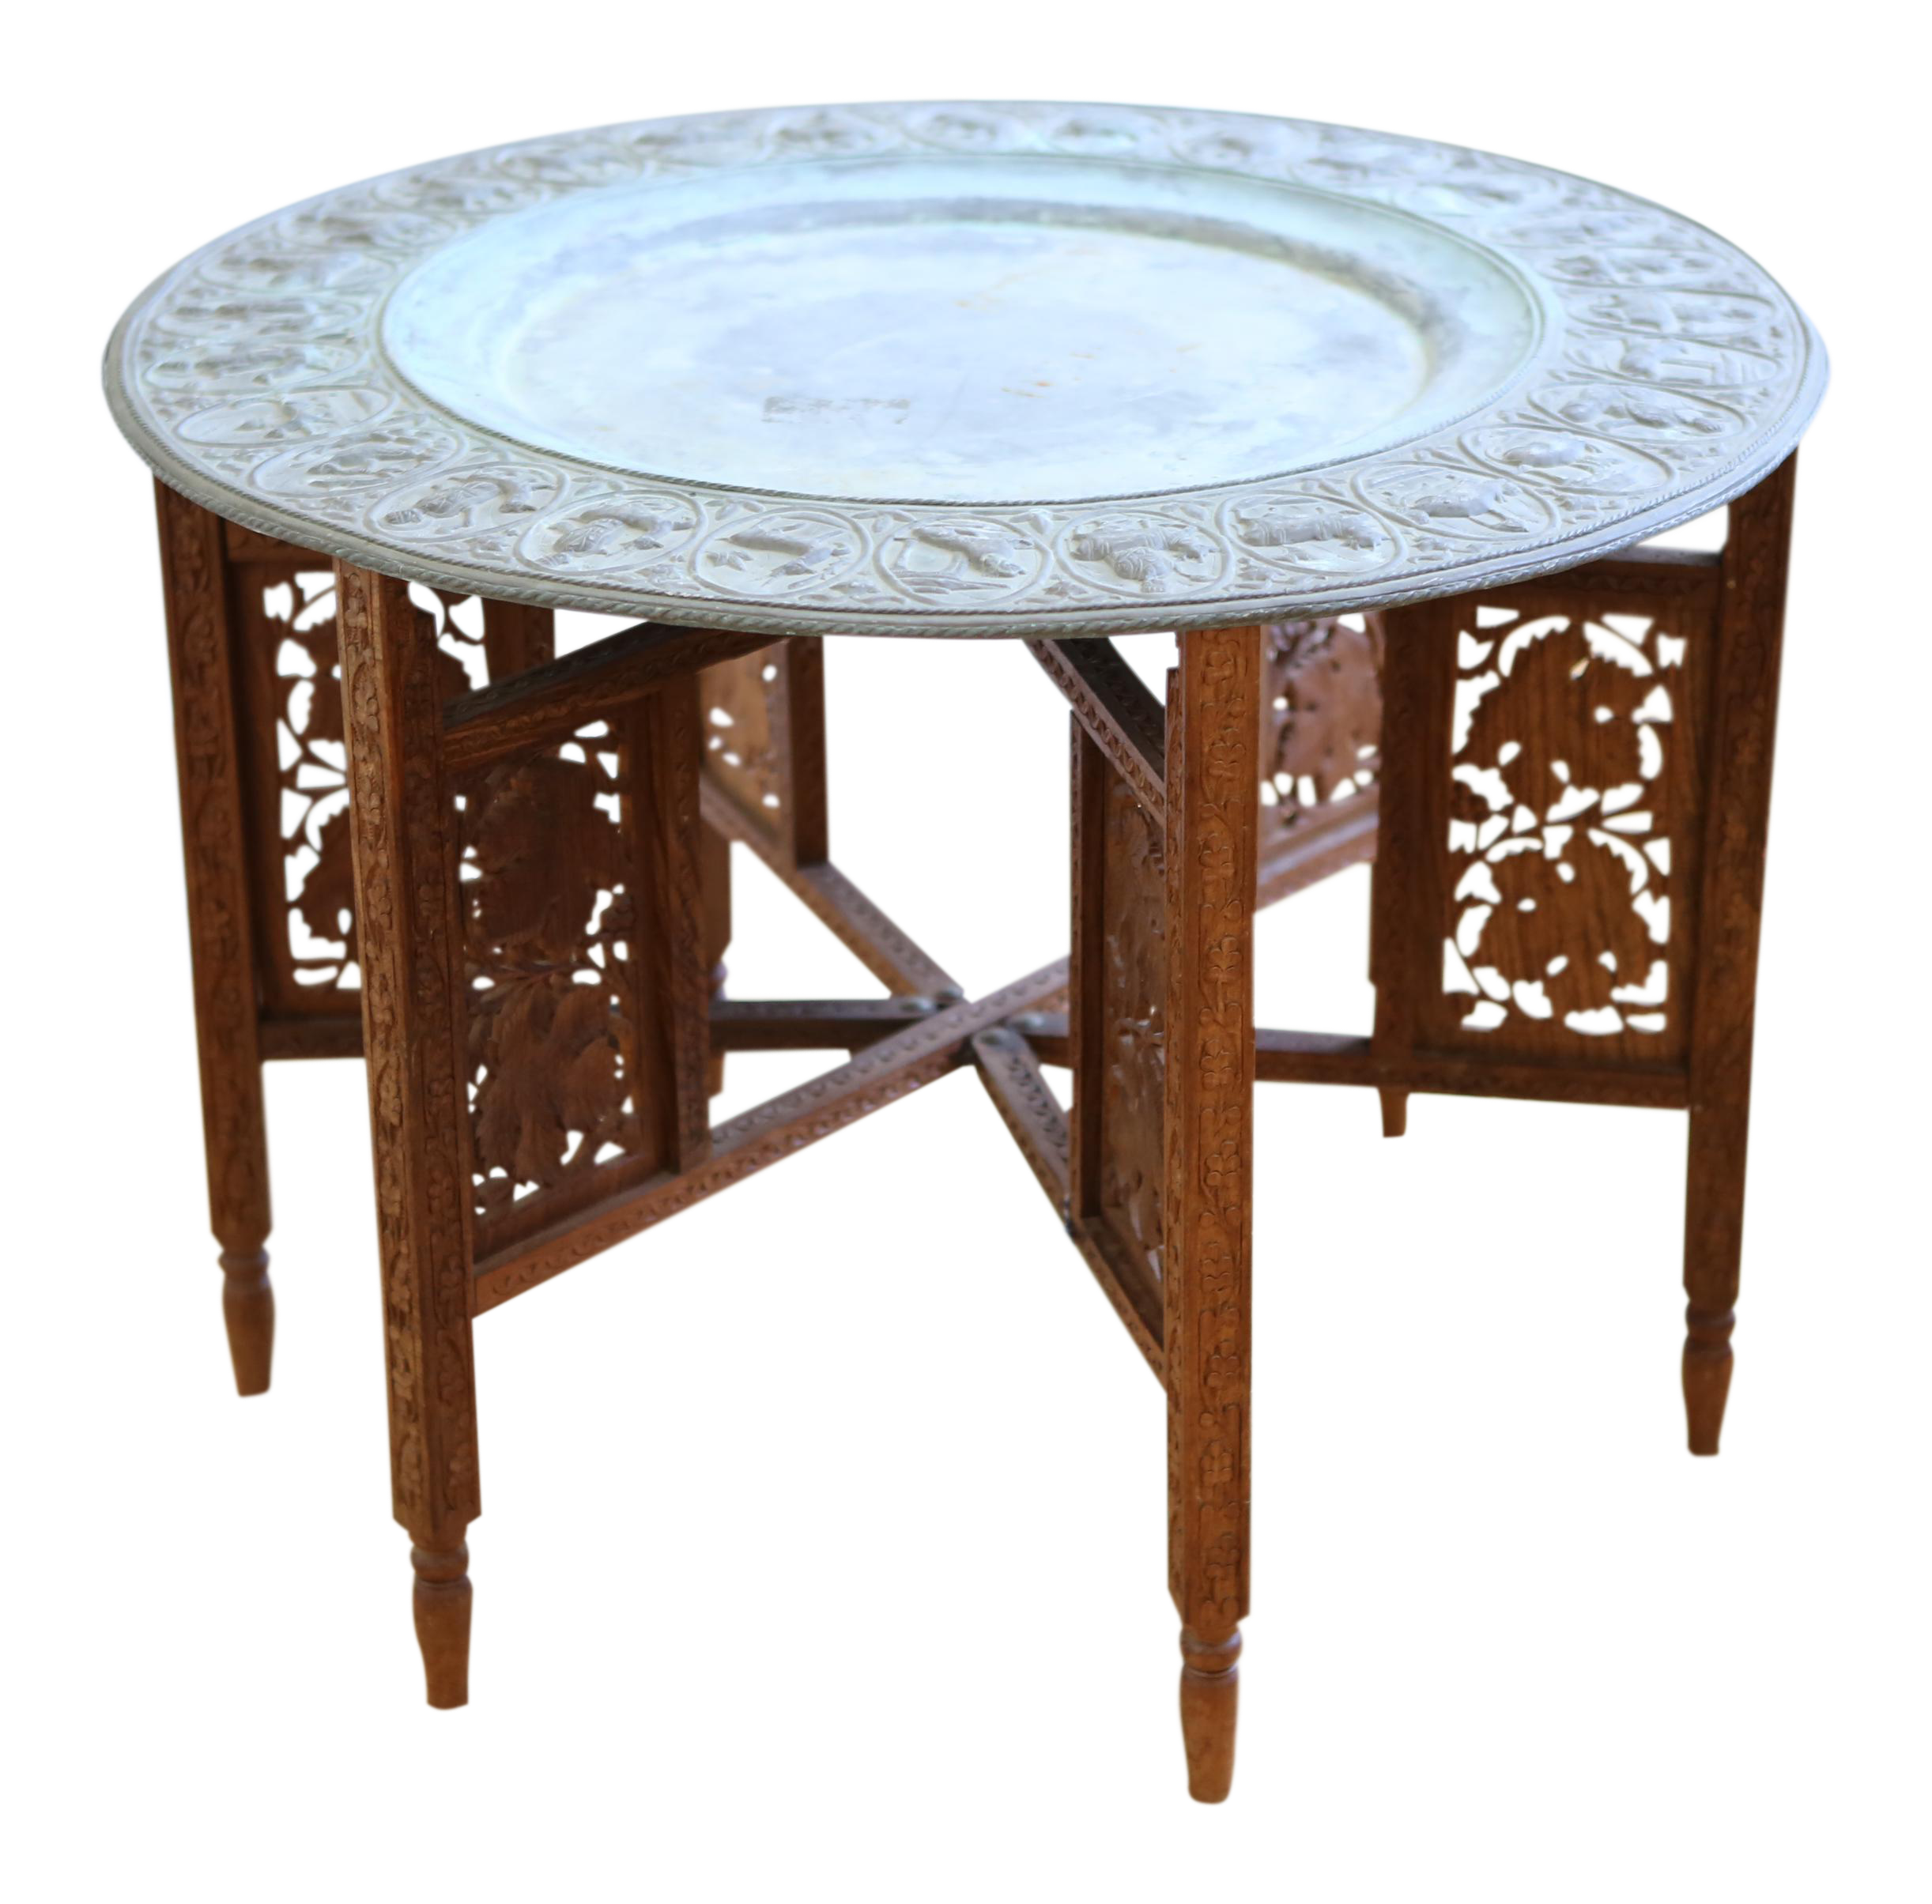 moroccan tray accent table chairish colonial metal side trays coffee ikea bedroom cabinets inch sofa console round tile pier coupon code indoor door mats marble end target small